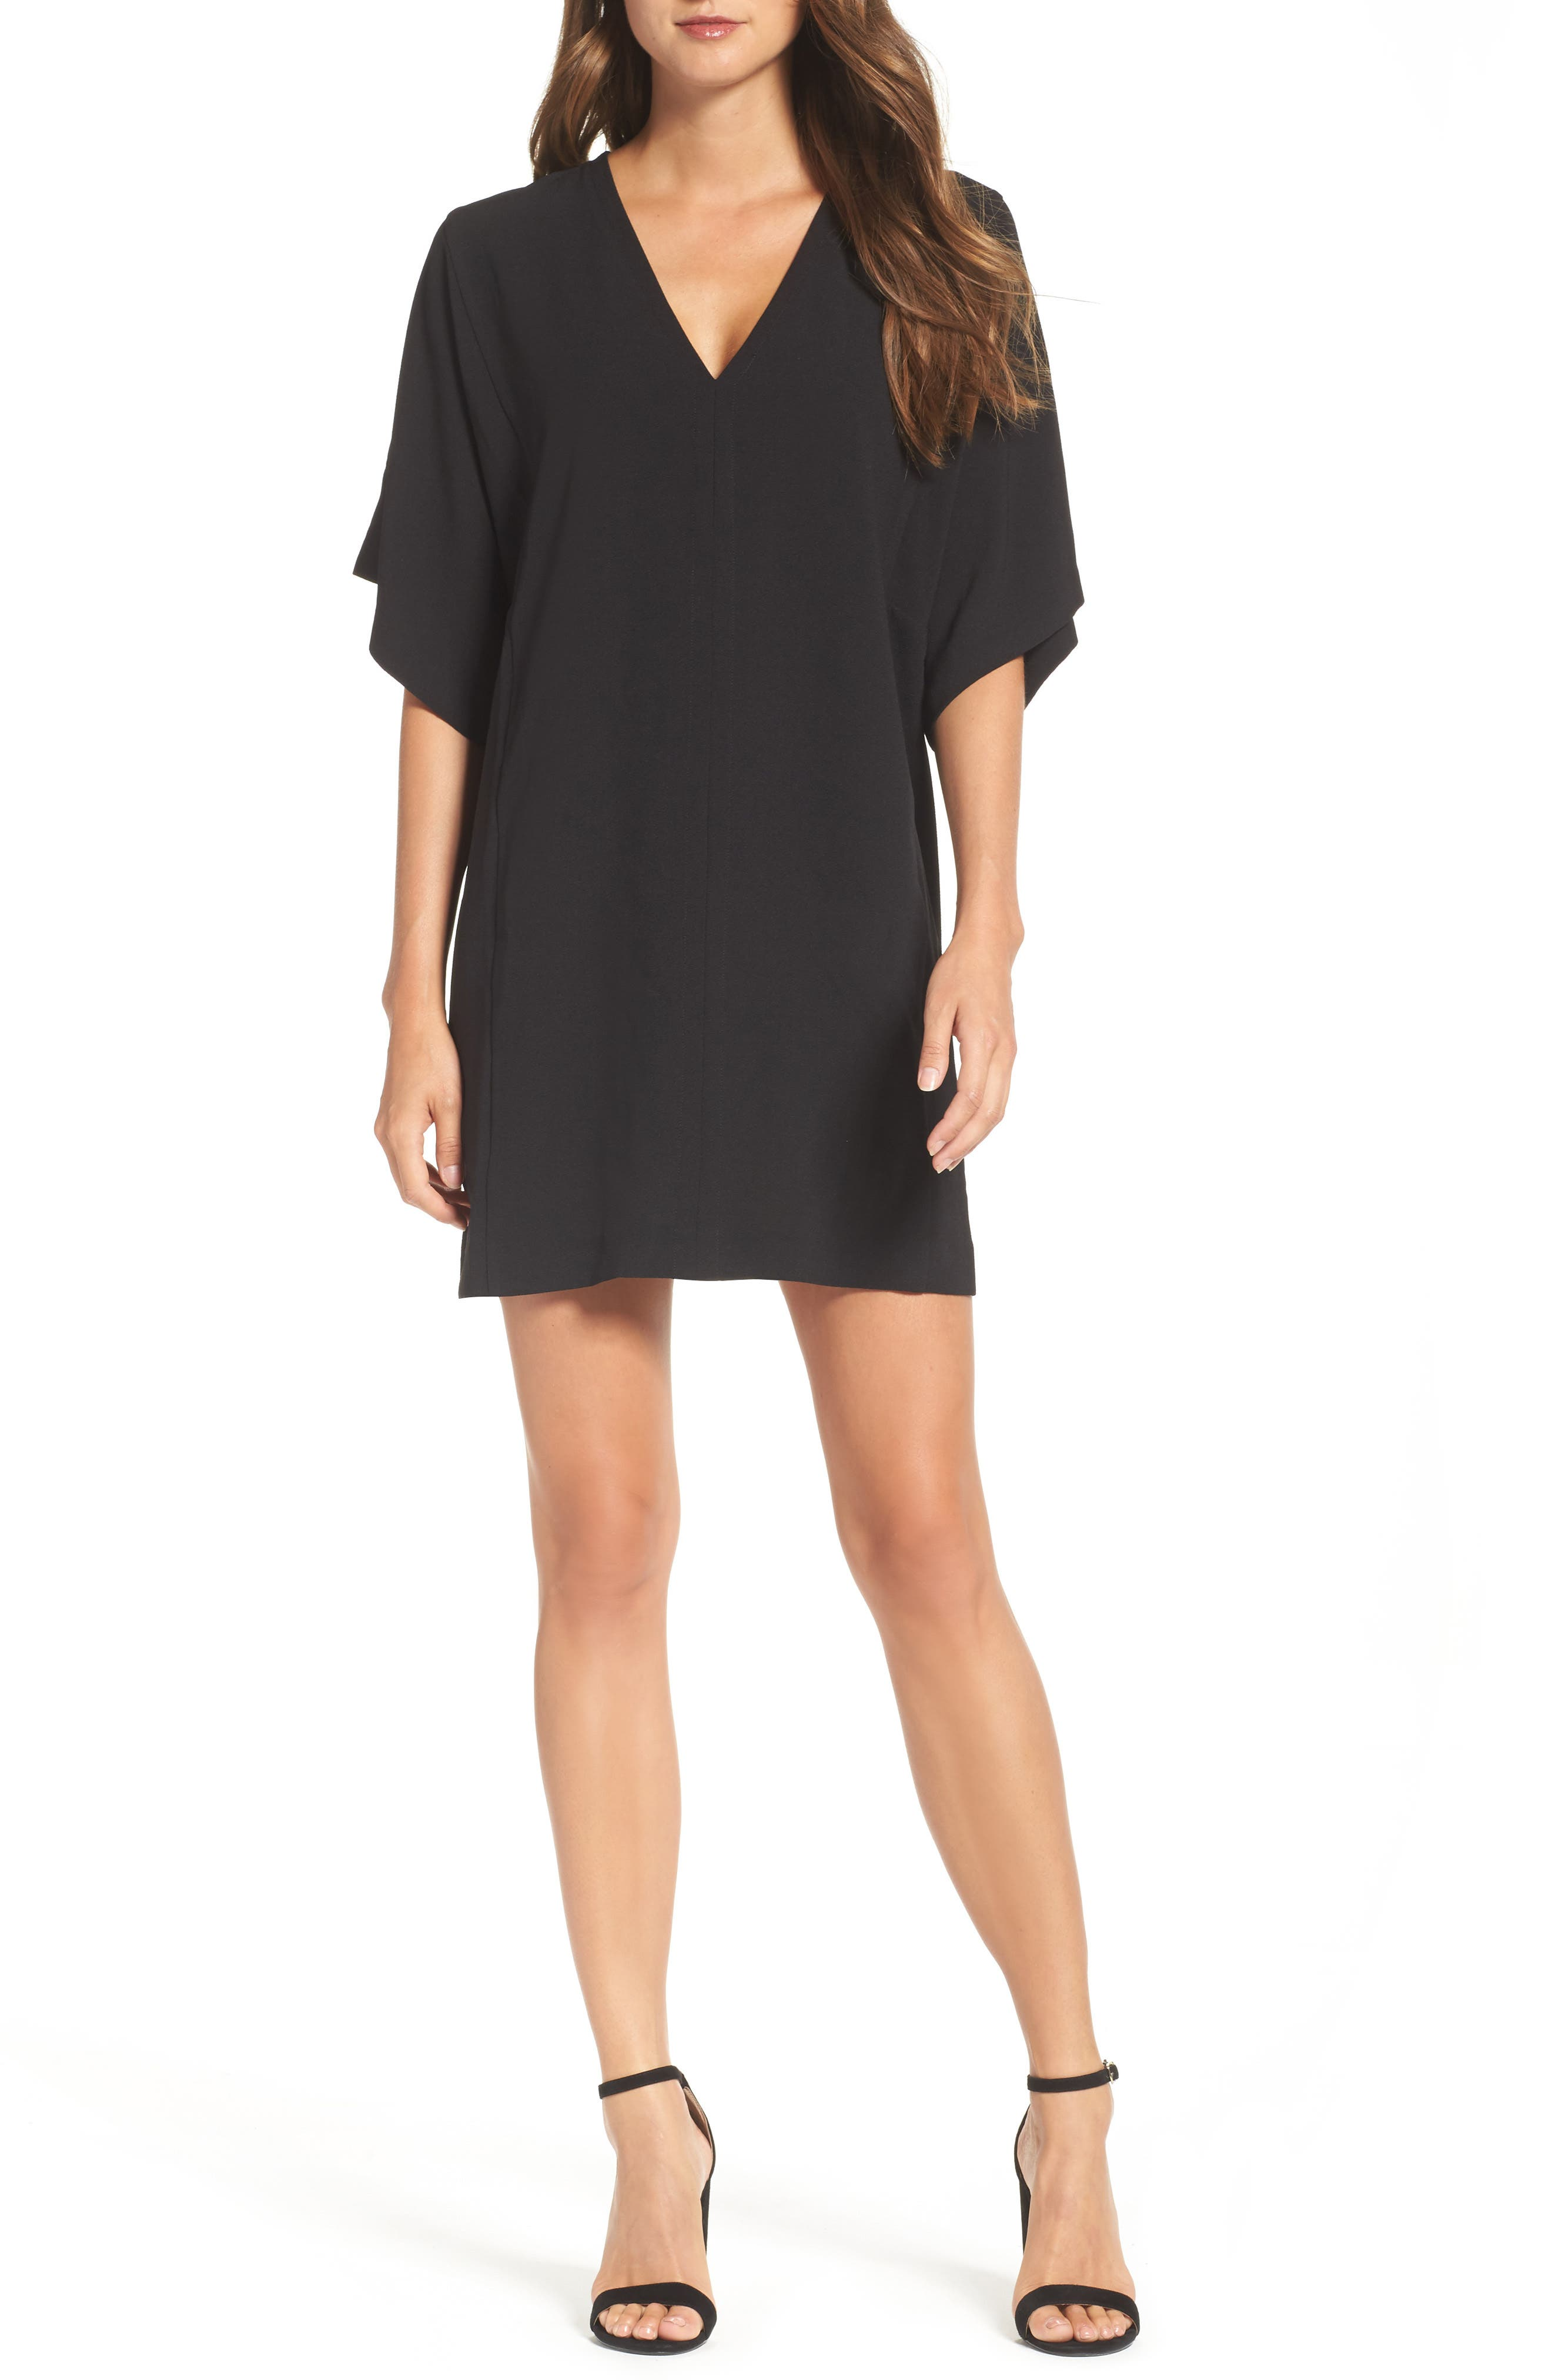 Felicity & Coco Sasha Shift Minidress (Nordstrom Exclusive)